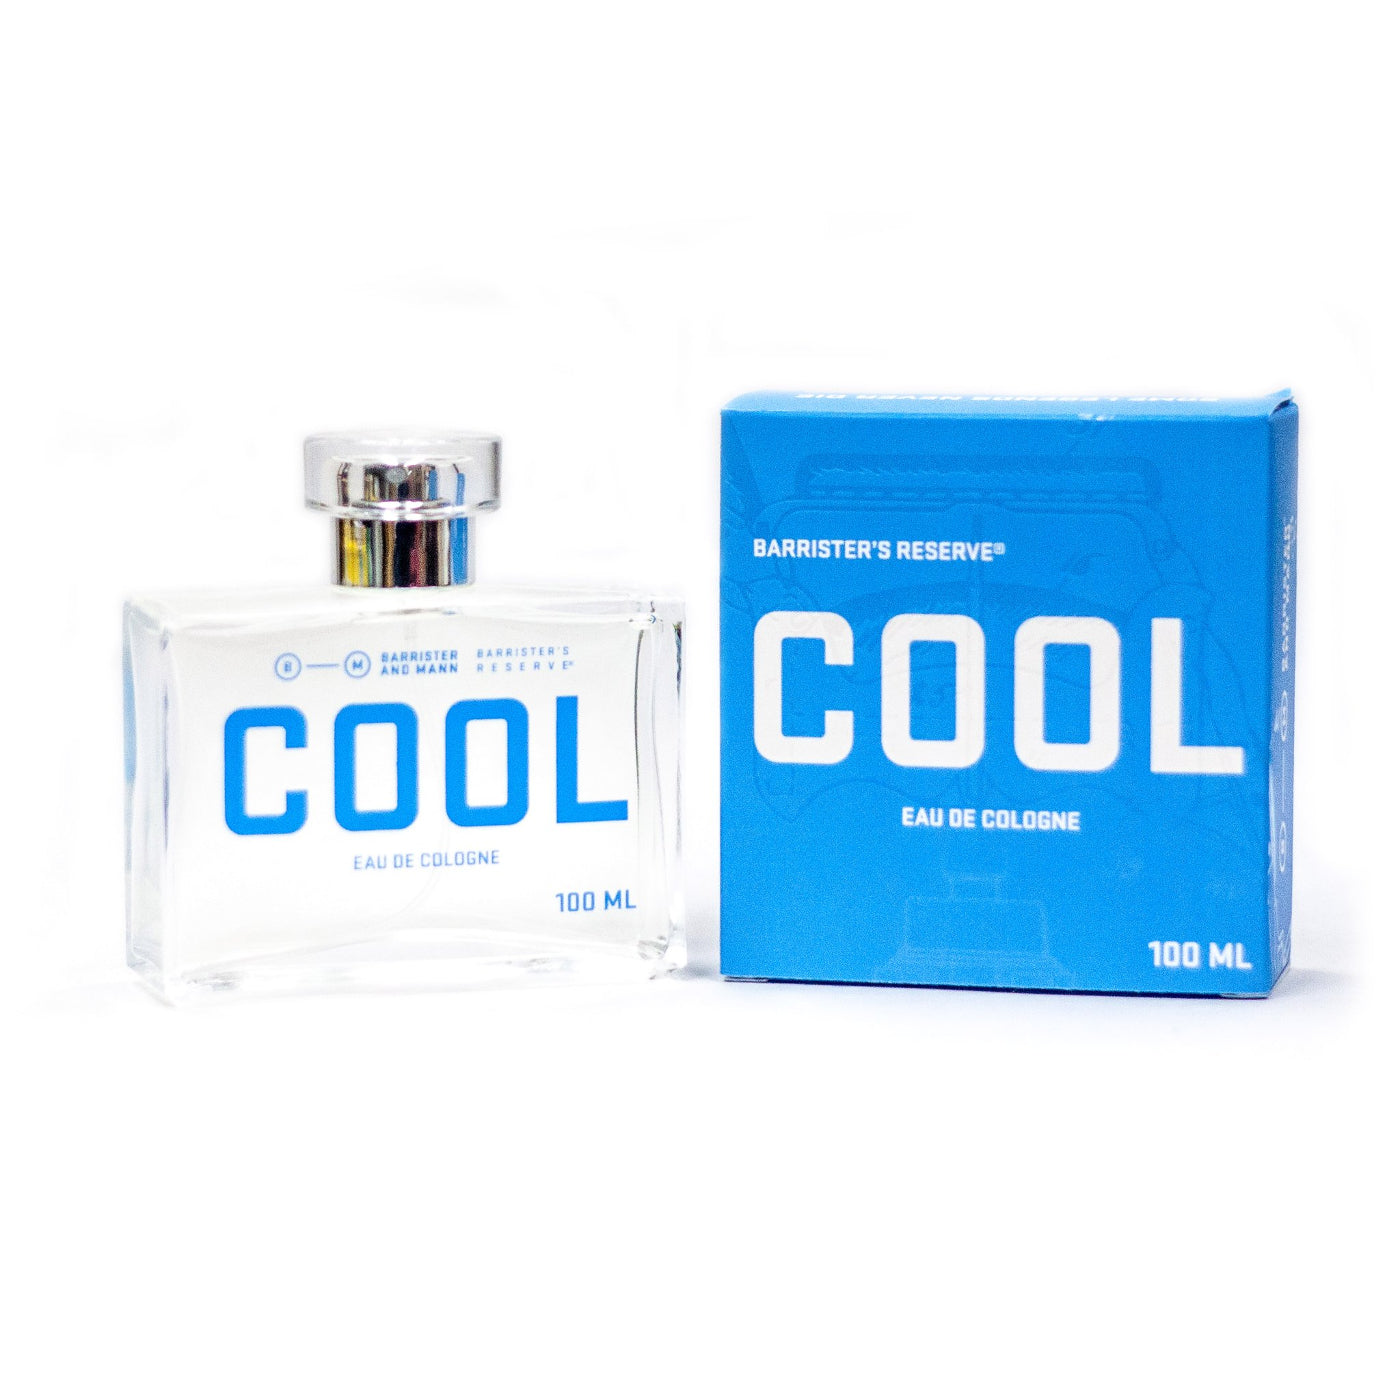 Barrister and Mann Barrister's Reserve Cool Eau de Cologne, 100 ml